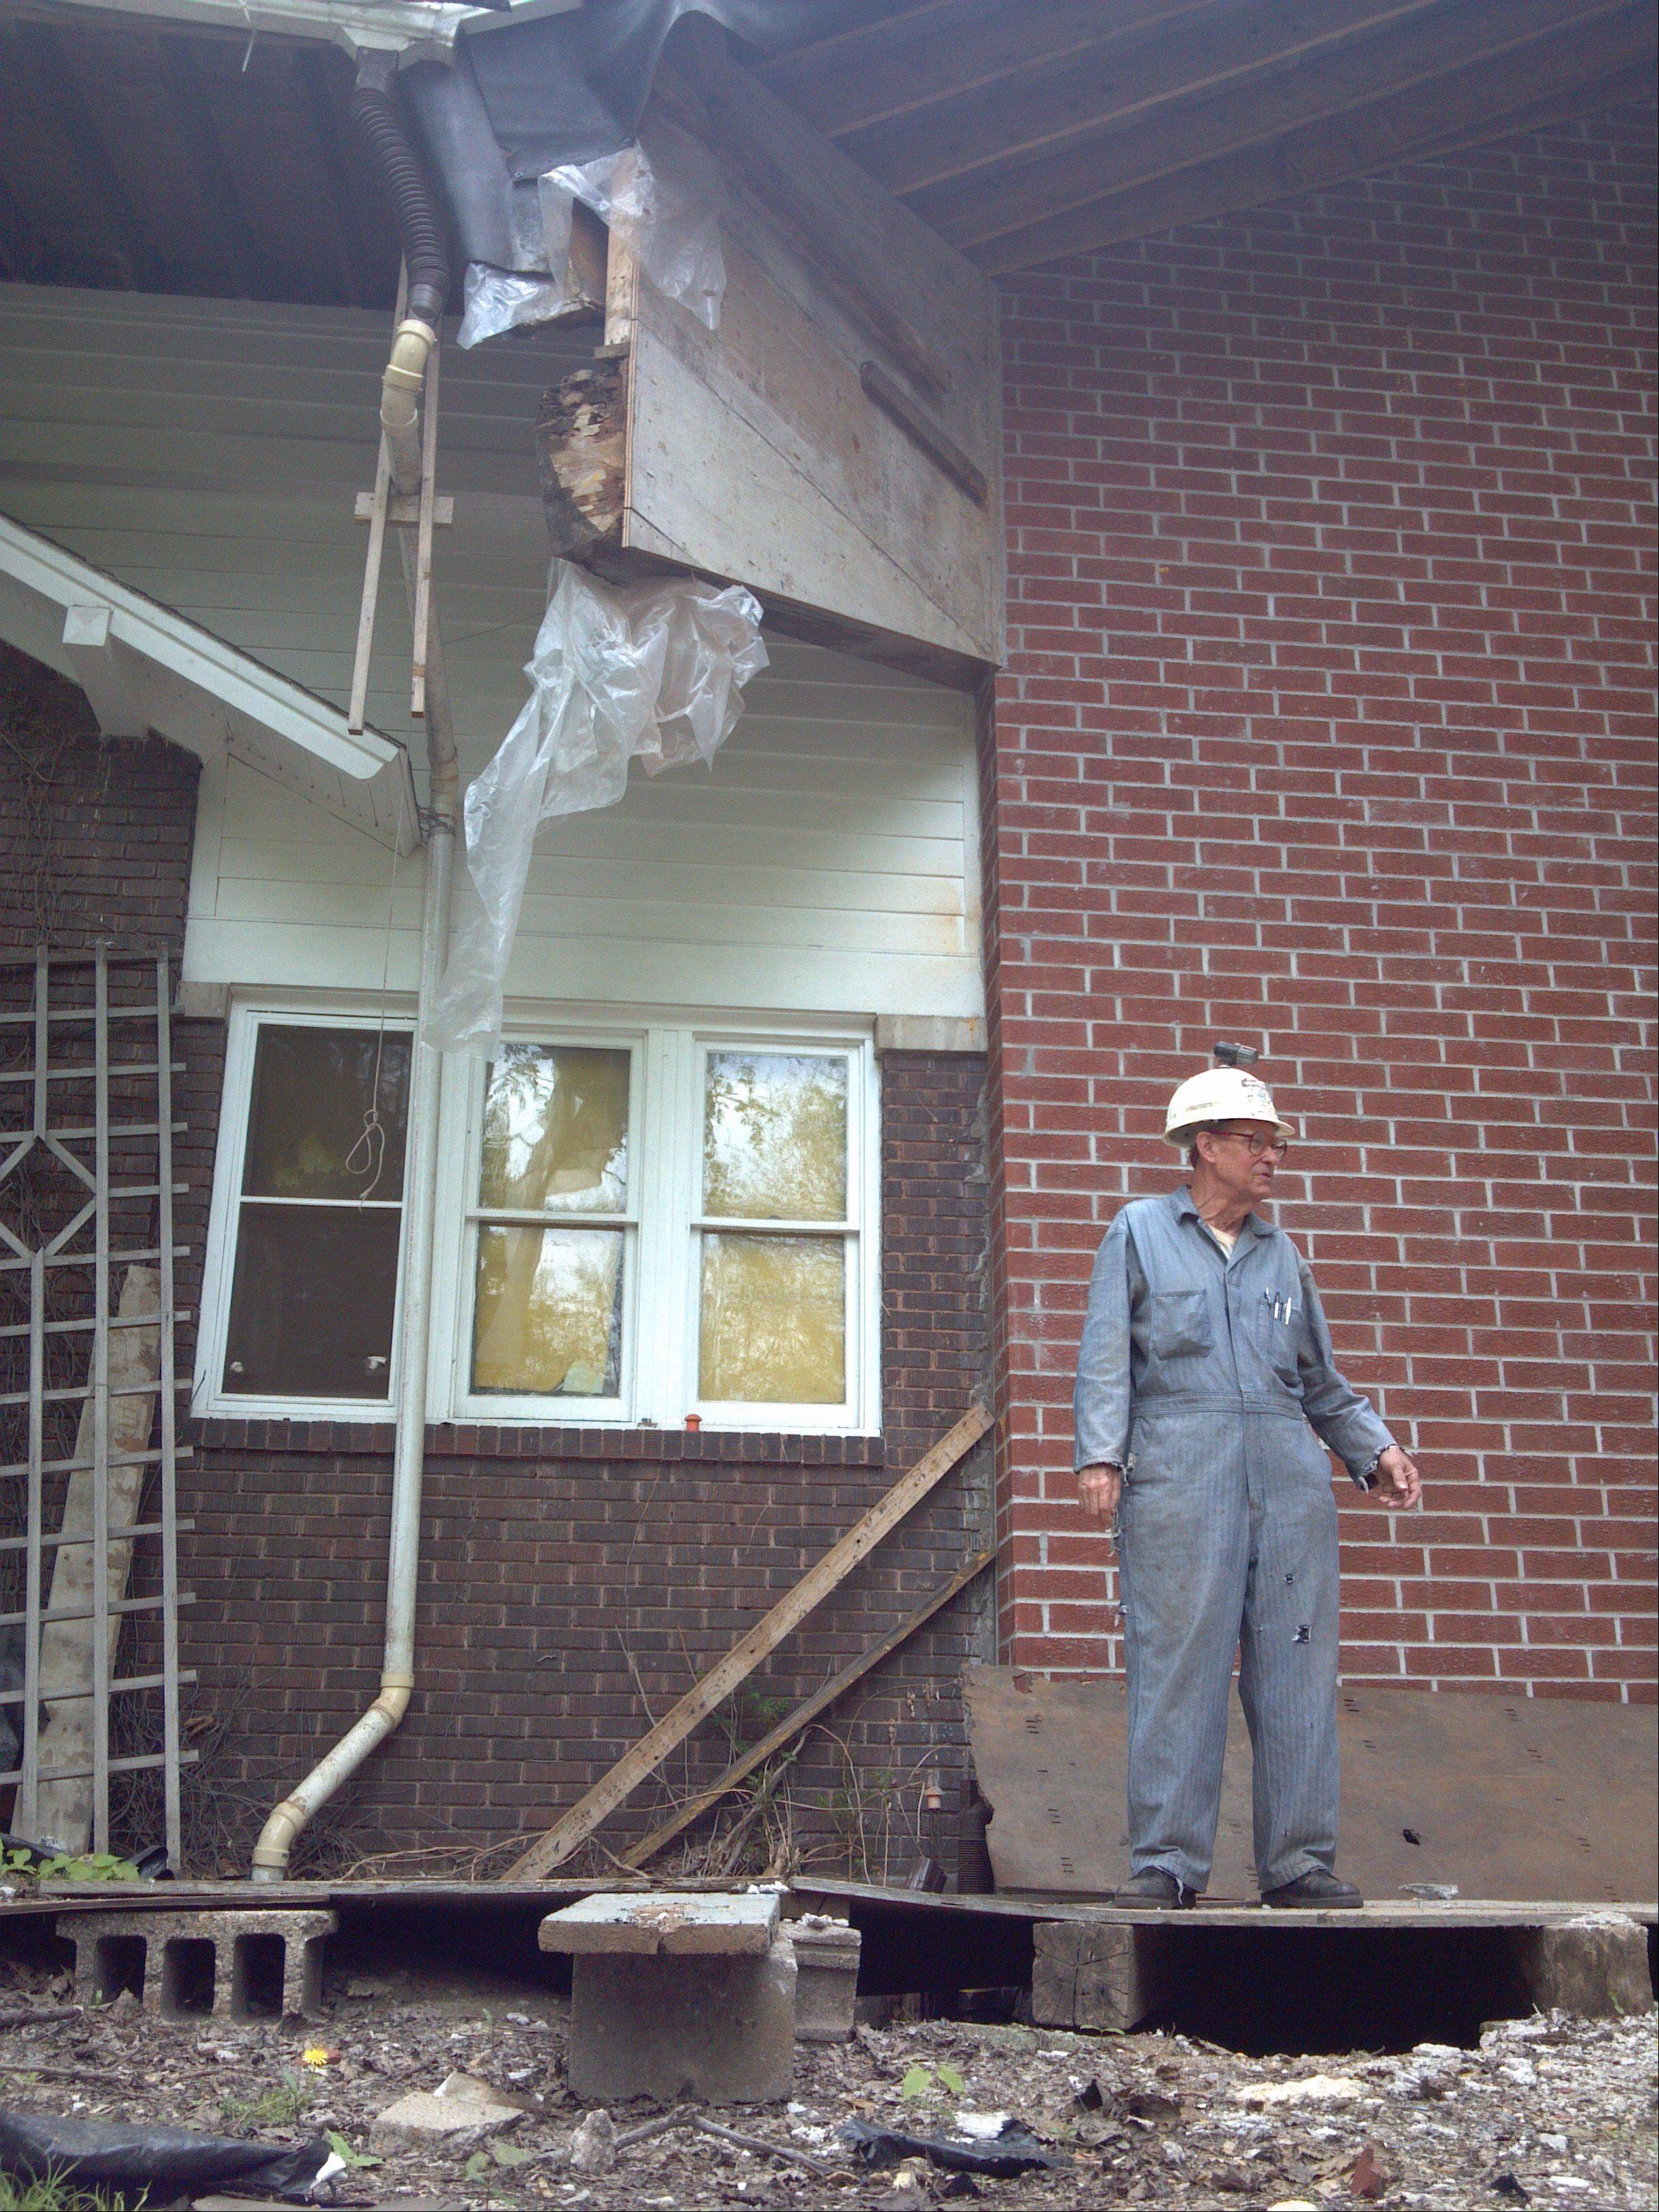 Clifford McIlvaine, who was sued by the city of St. Charles in an effort to get him to finish a project that he first pulled a permit for in 1975, stands on a landing between his original home to the left and new, super-insulated addition on the right, which he hopes to turn into a museum for his and his father's inventions, along with city memorabilia.